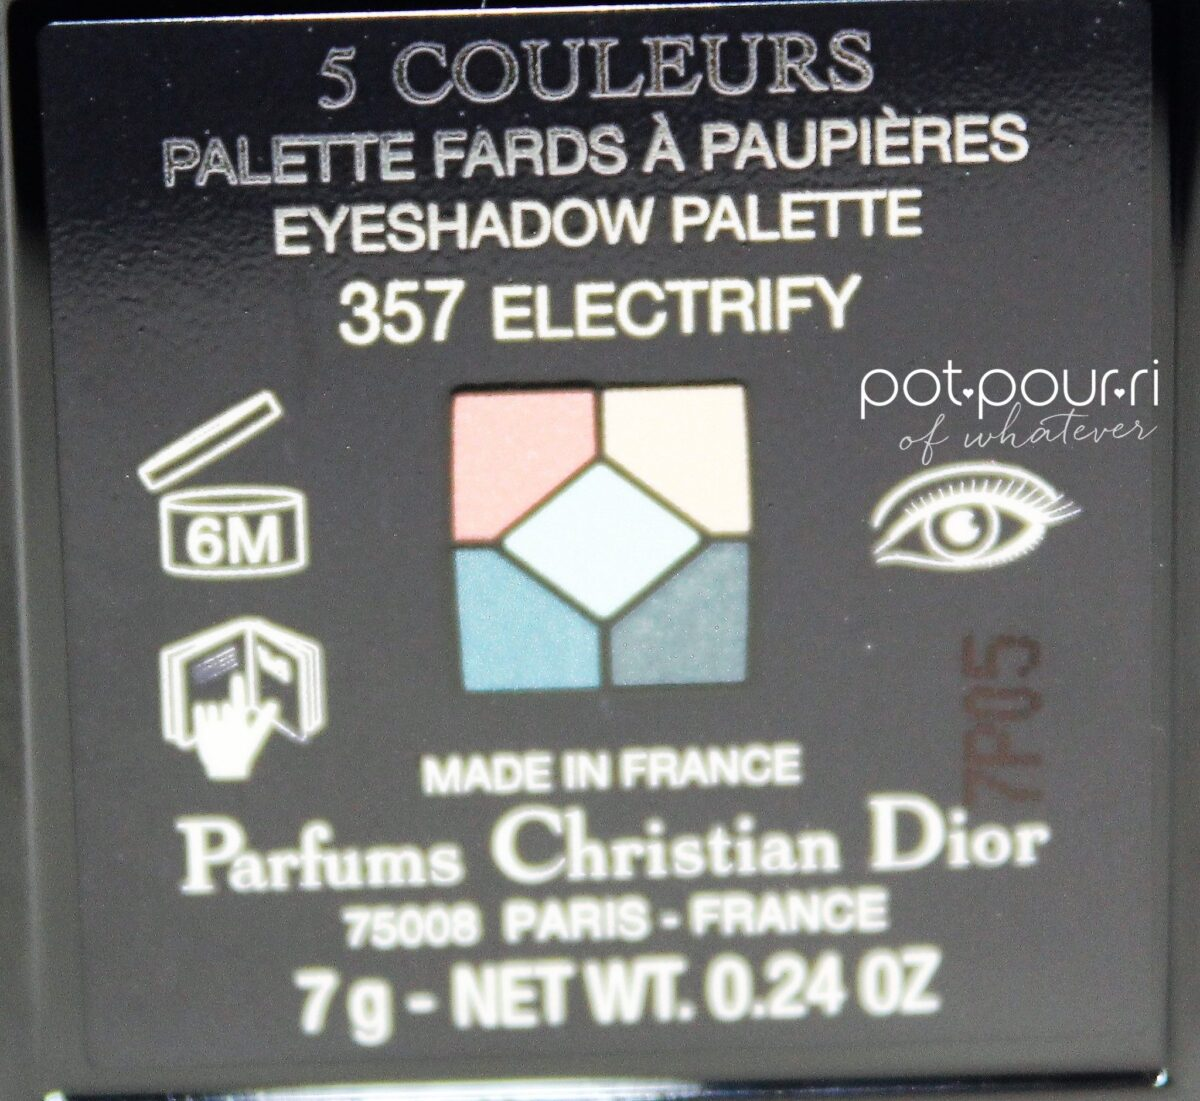 Dior-High-Fidelity-Palette-Electrify-357-packaging-compact-back